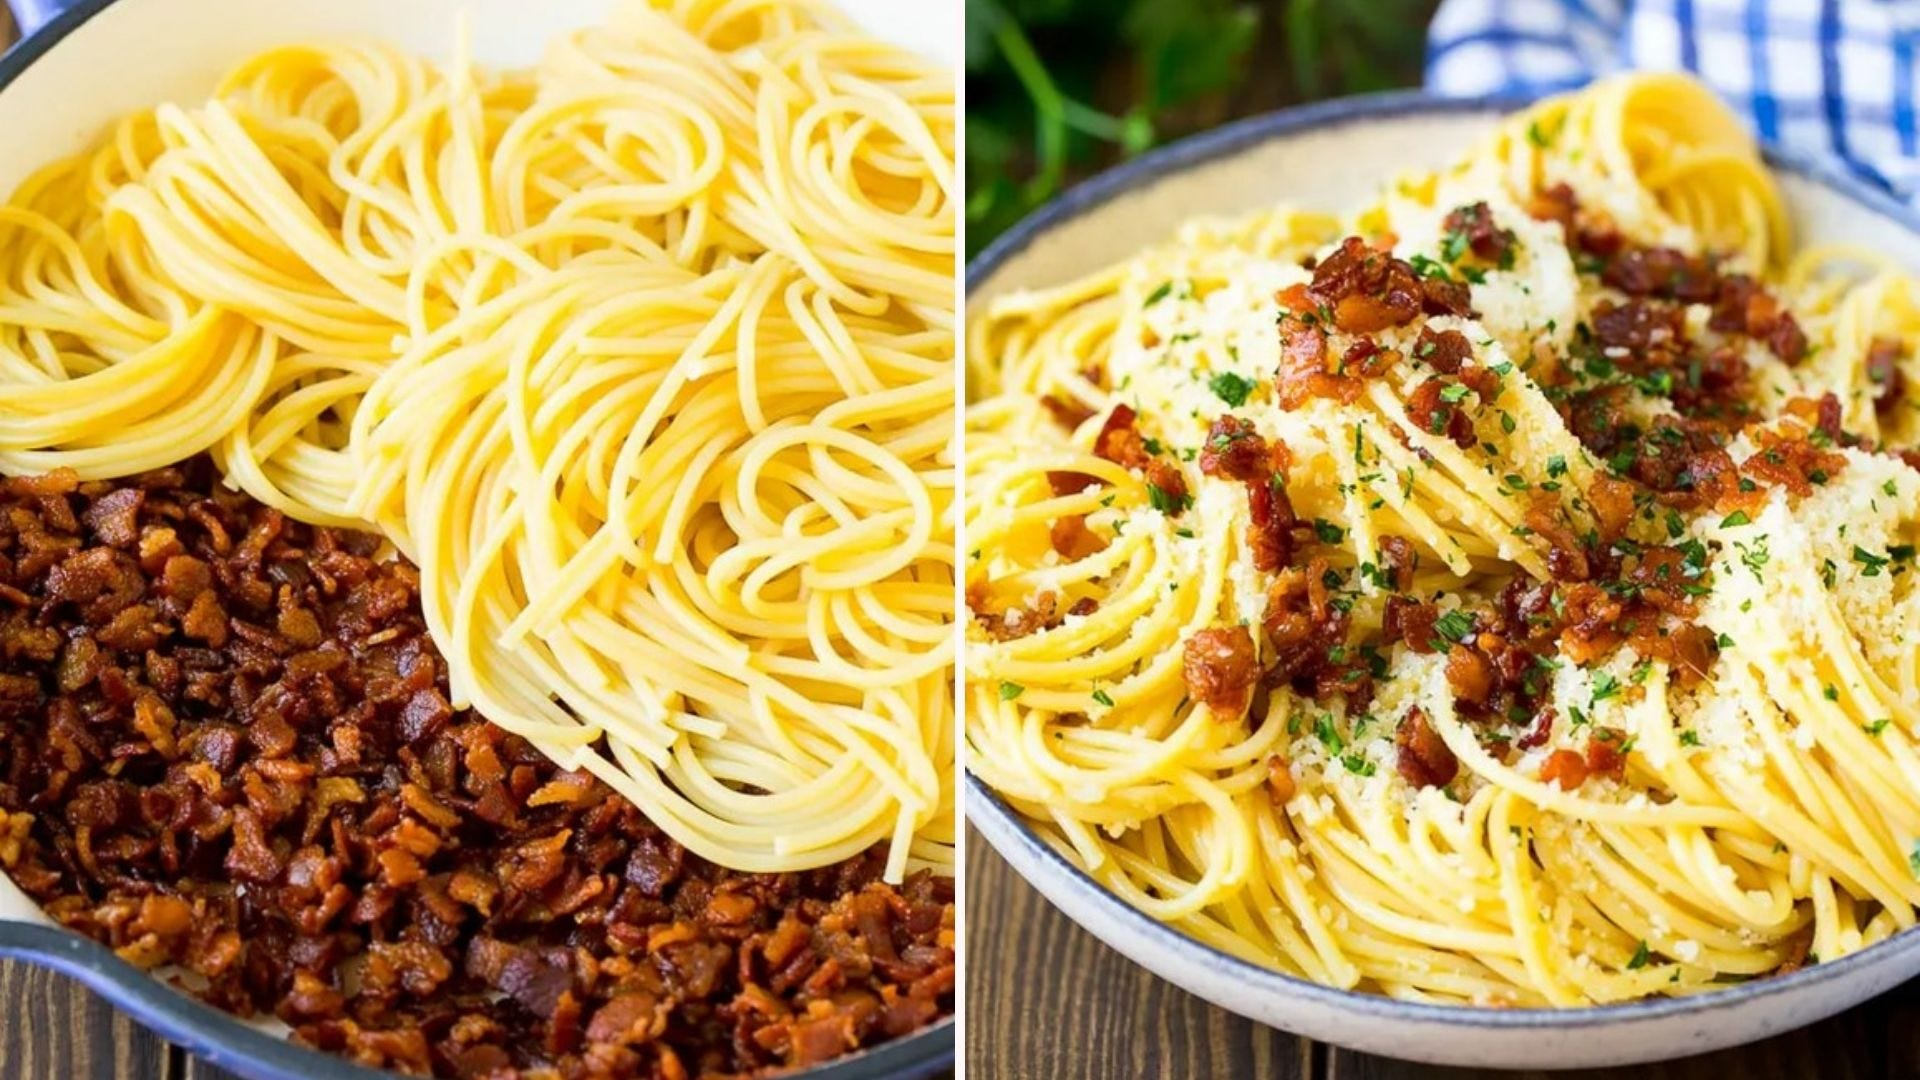 Two side-by-side images; the left image is of spaghetti and chopped bacon in a large skillet and the right image is of a finished pasta carbonara dinner topped with bacon bits, parmesan cheese and parsley.